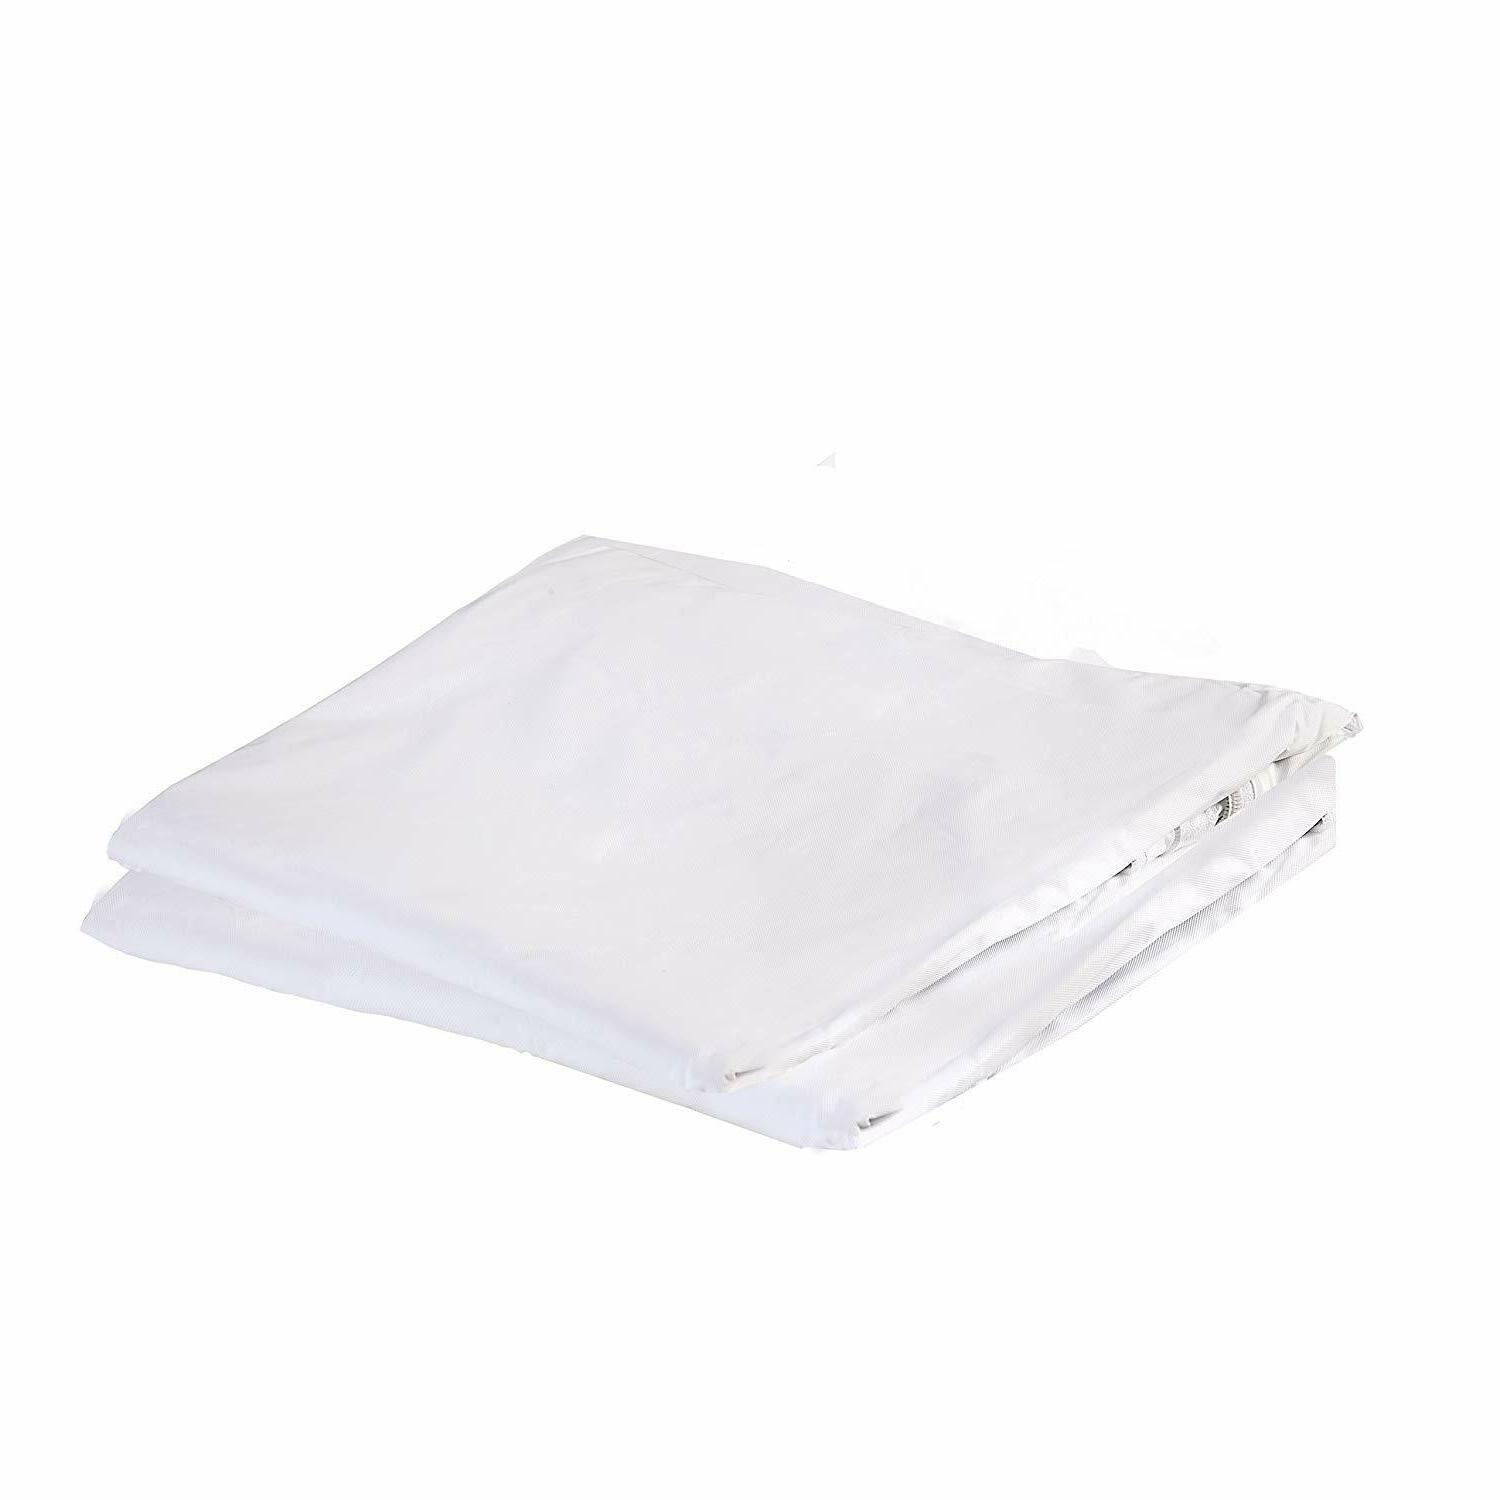 Mattress Hypoallergenic Bug Protector Full Size